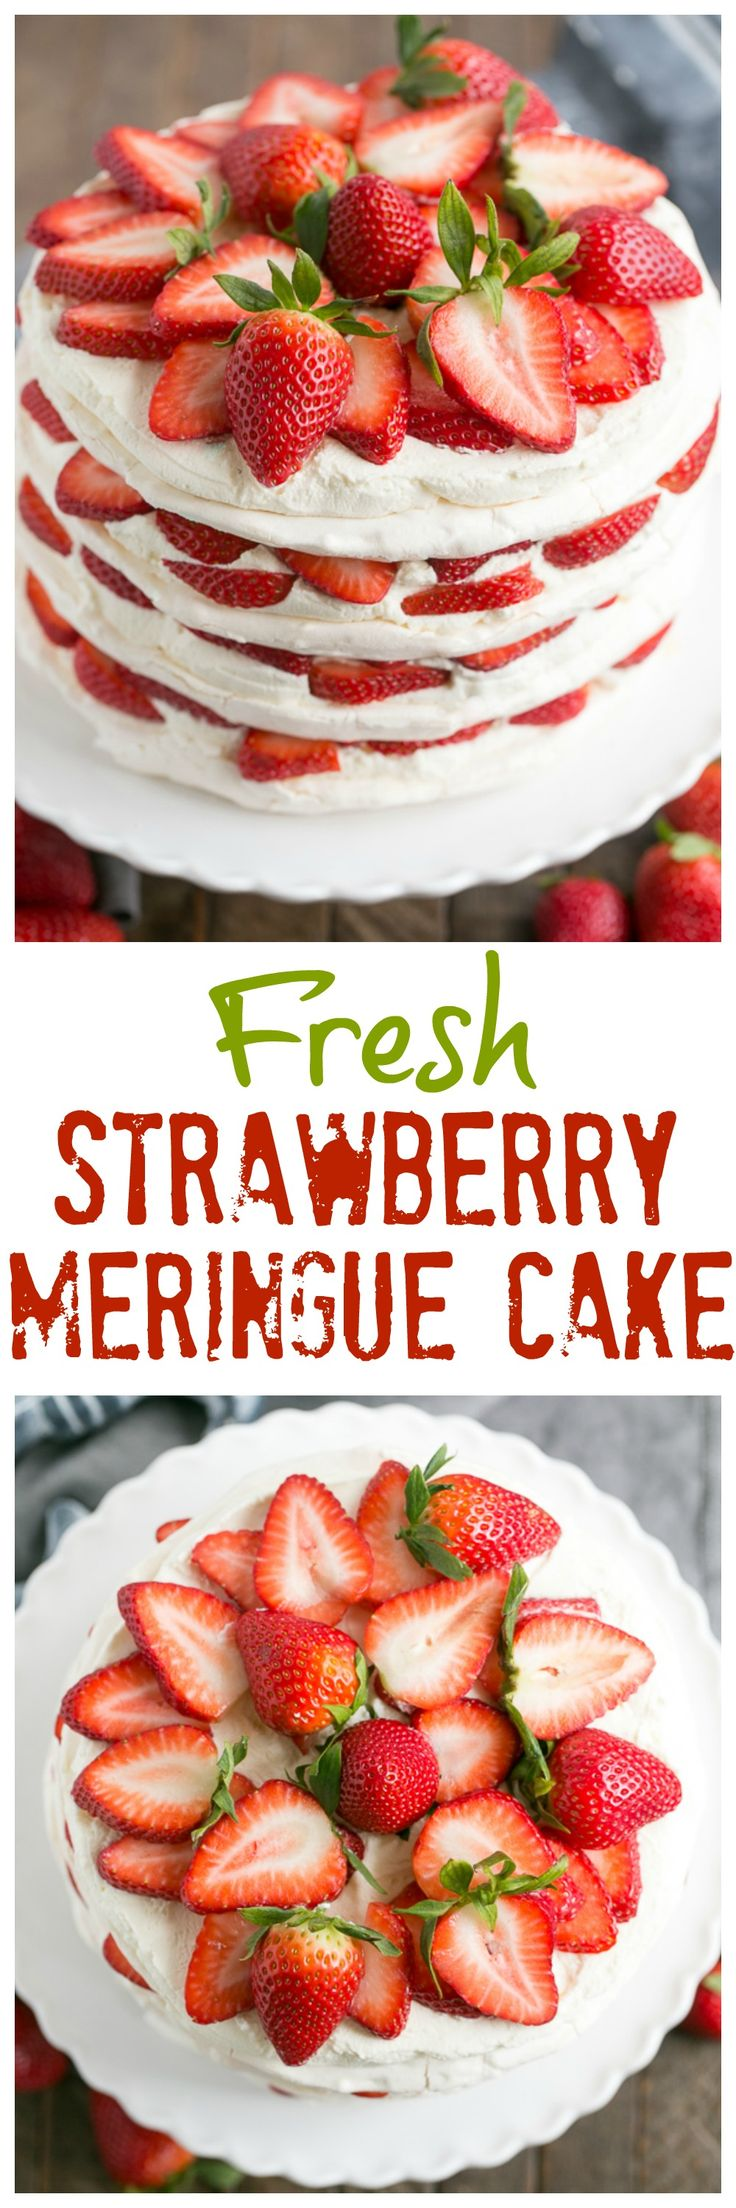 Fresh Strawberry Meringue Cake | A luscious dessert with layers of baked meringue, fresh strawberries and mascarpone whipped cream! #SundaySupper